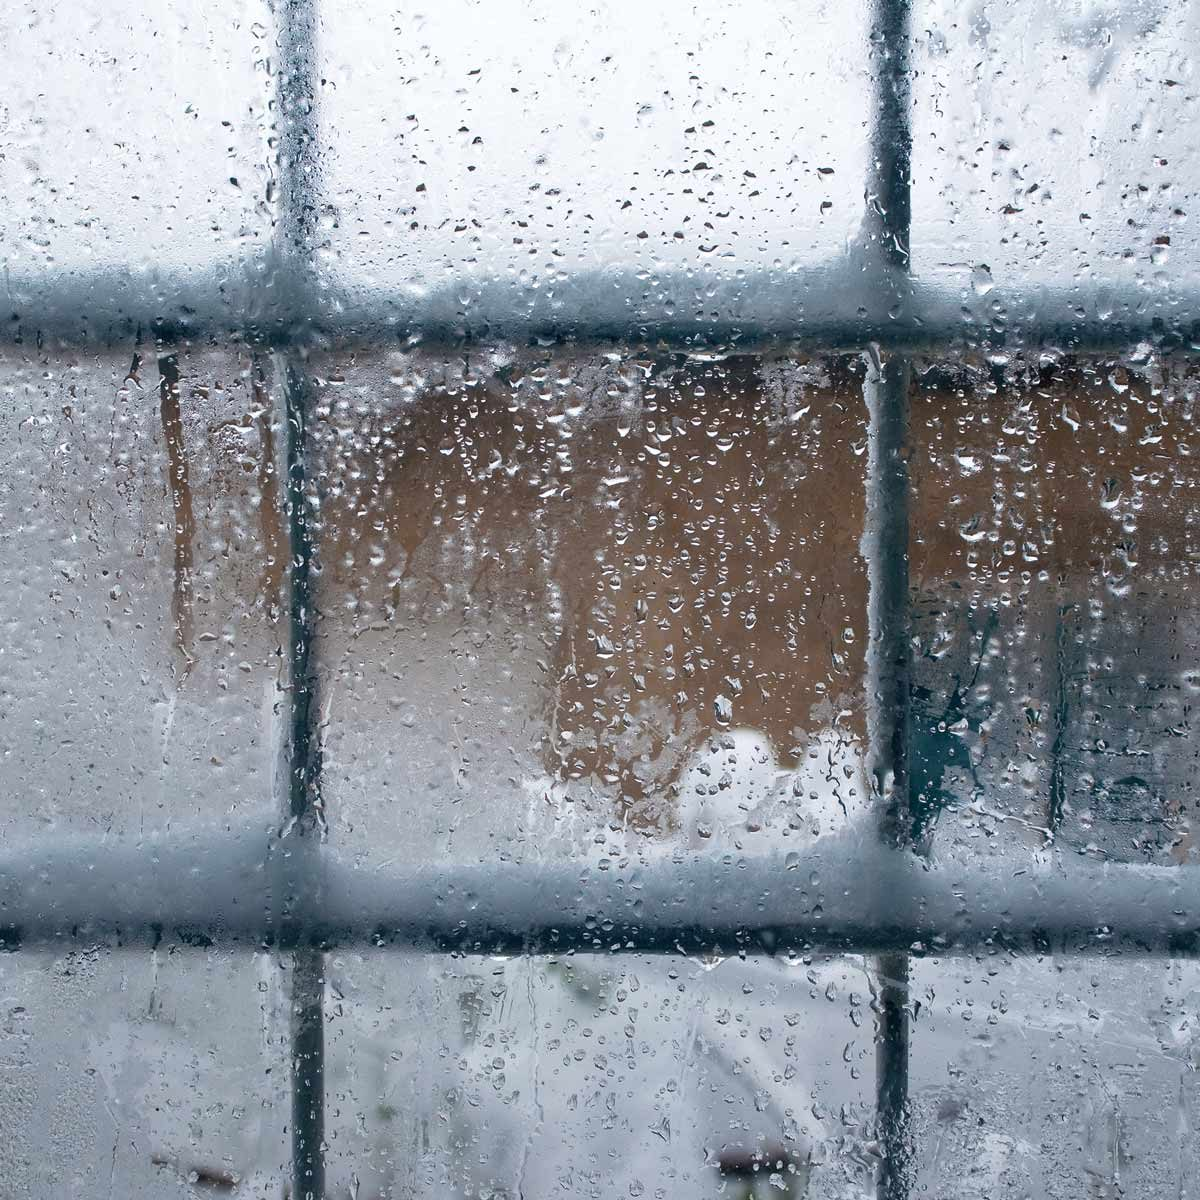 Winter window, drops of water and snowflakes on a window panel